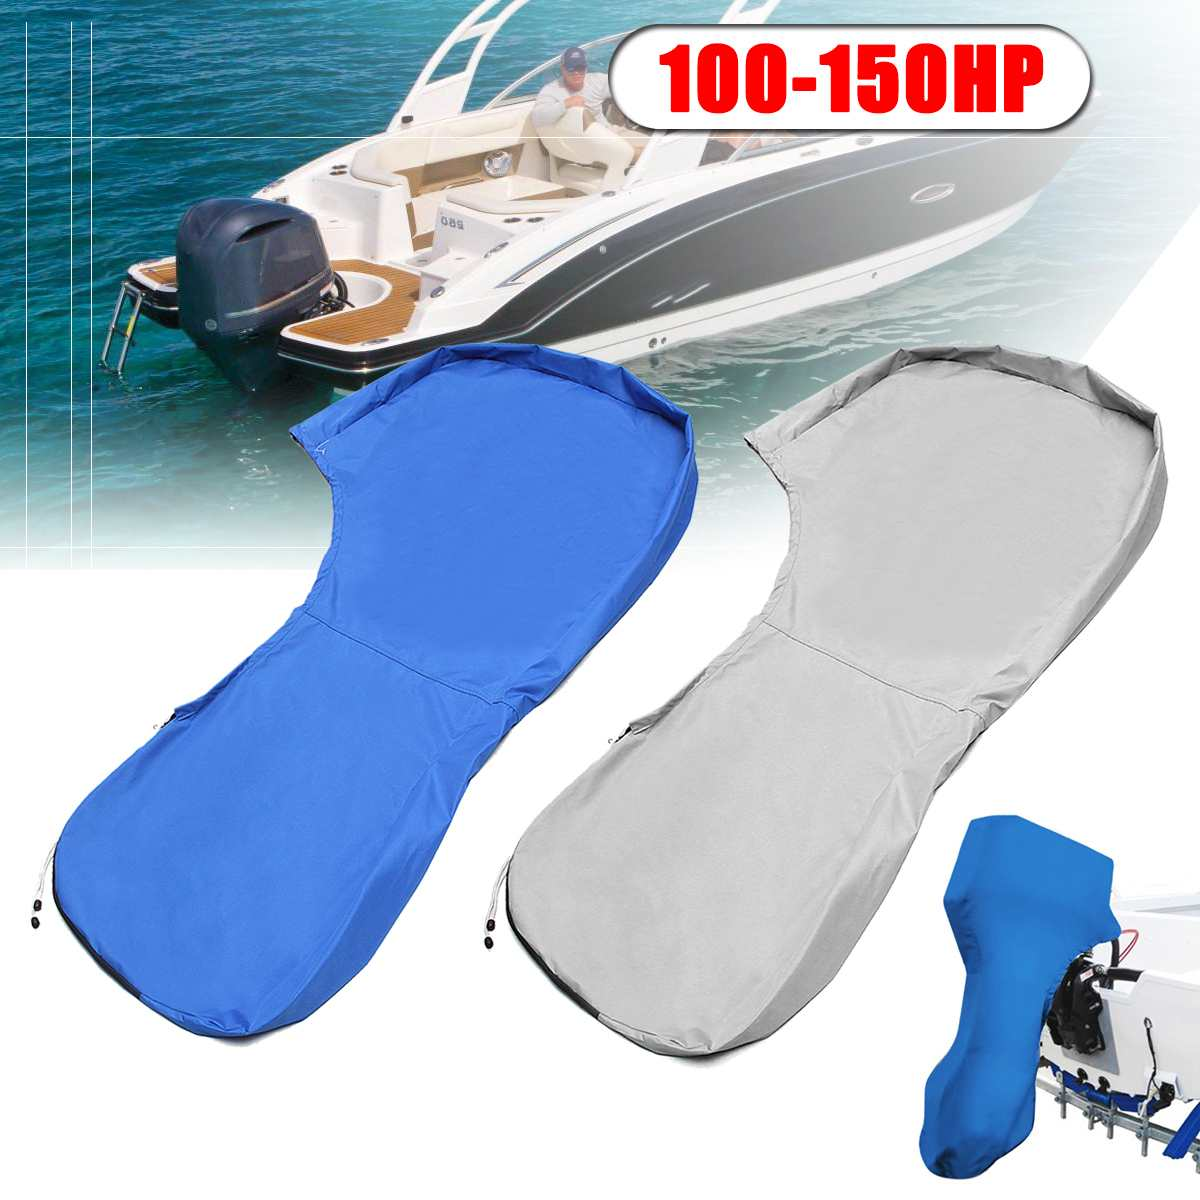 77.56 Inch 600D Boat Full Outboard Engine Motor Cover For 100-150HP Hose Power Waterproof